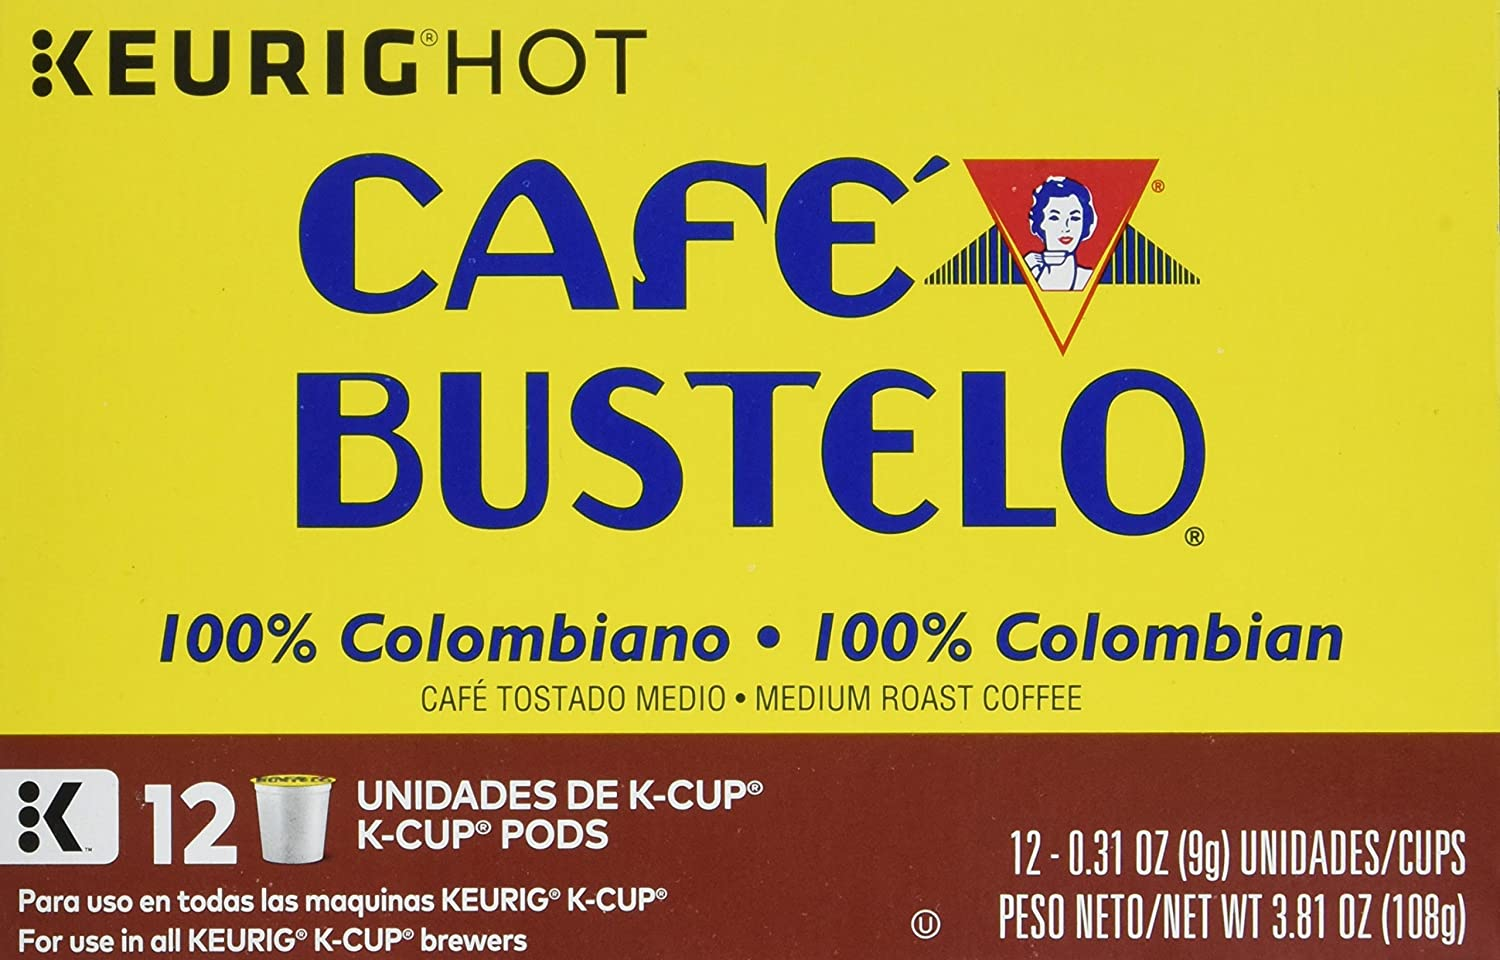 Cafe Bustelo 100% Colombian Kcup, 3.81 Ounce: Amazon.com: Grocery & Gourmet Food